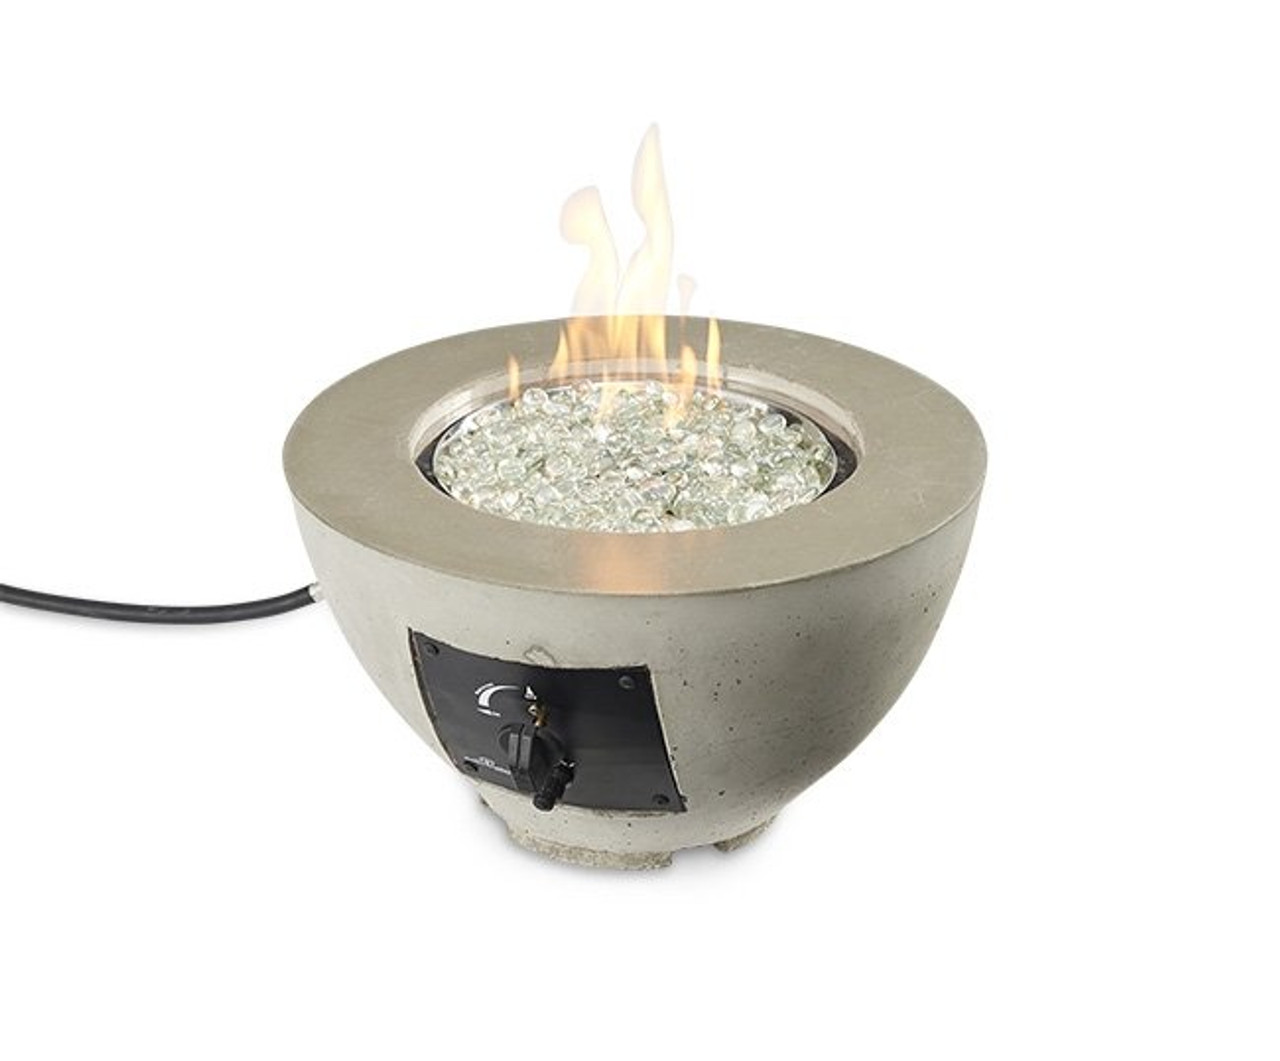 "Outdoor Greatroom Cove 12"" Gas Fire Pit Bowl"